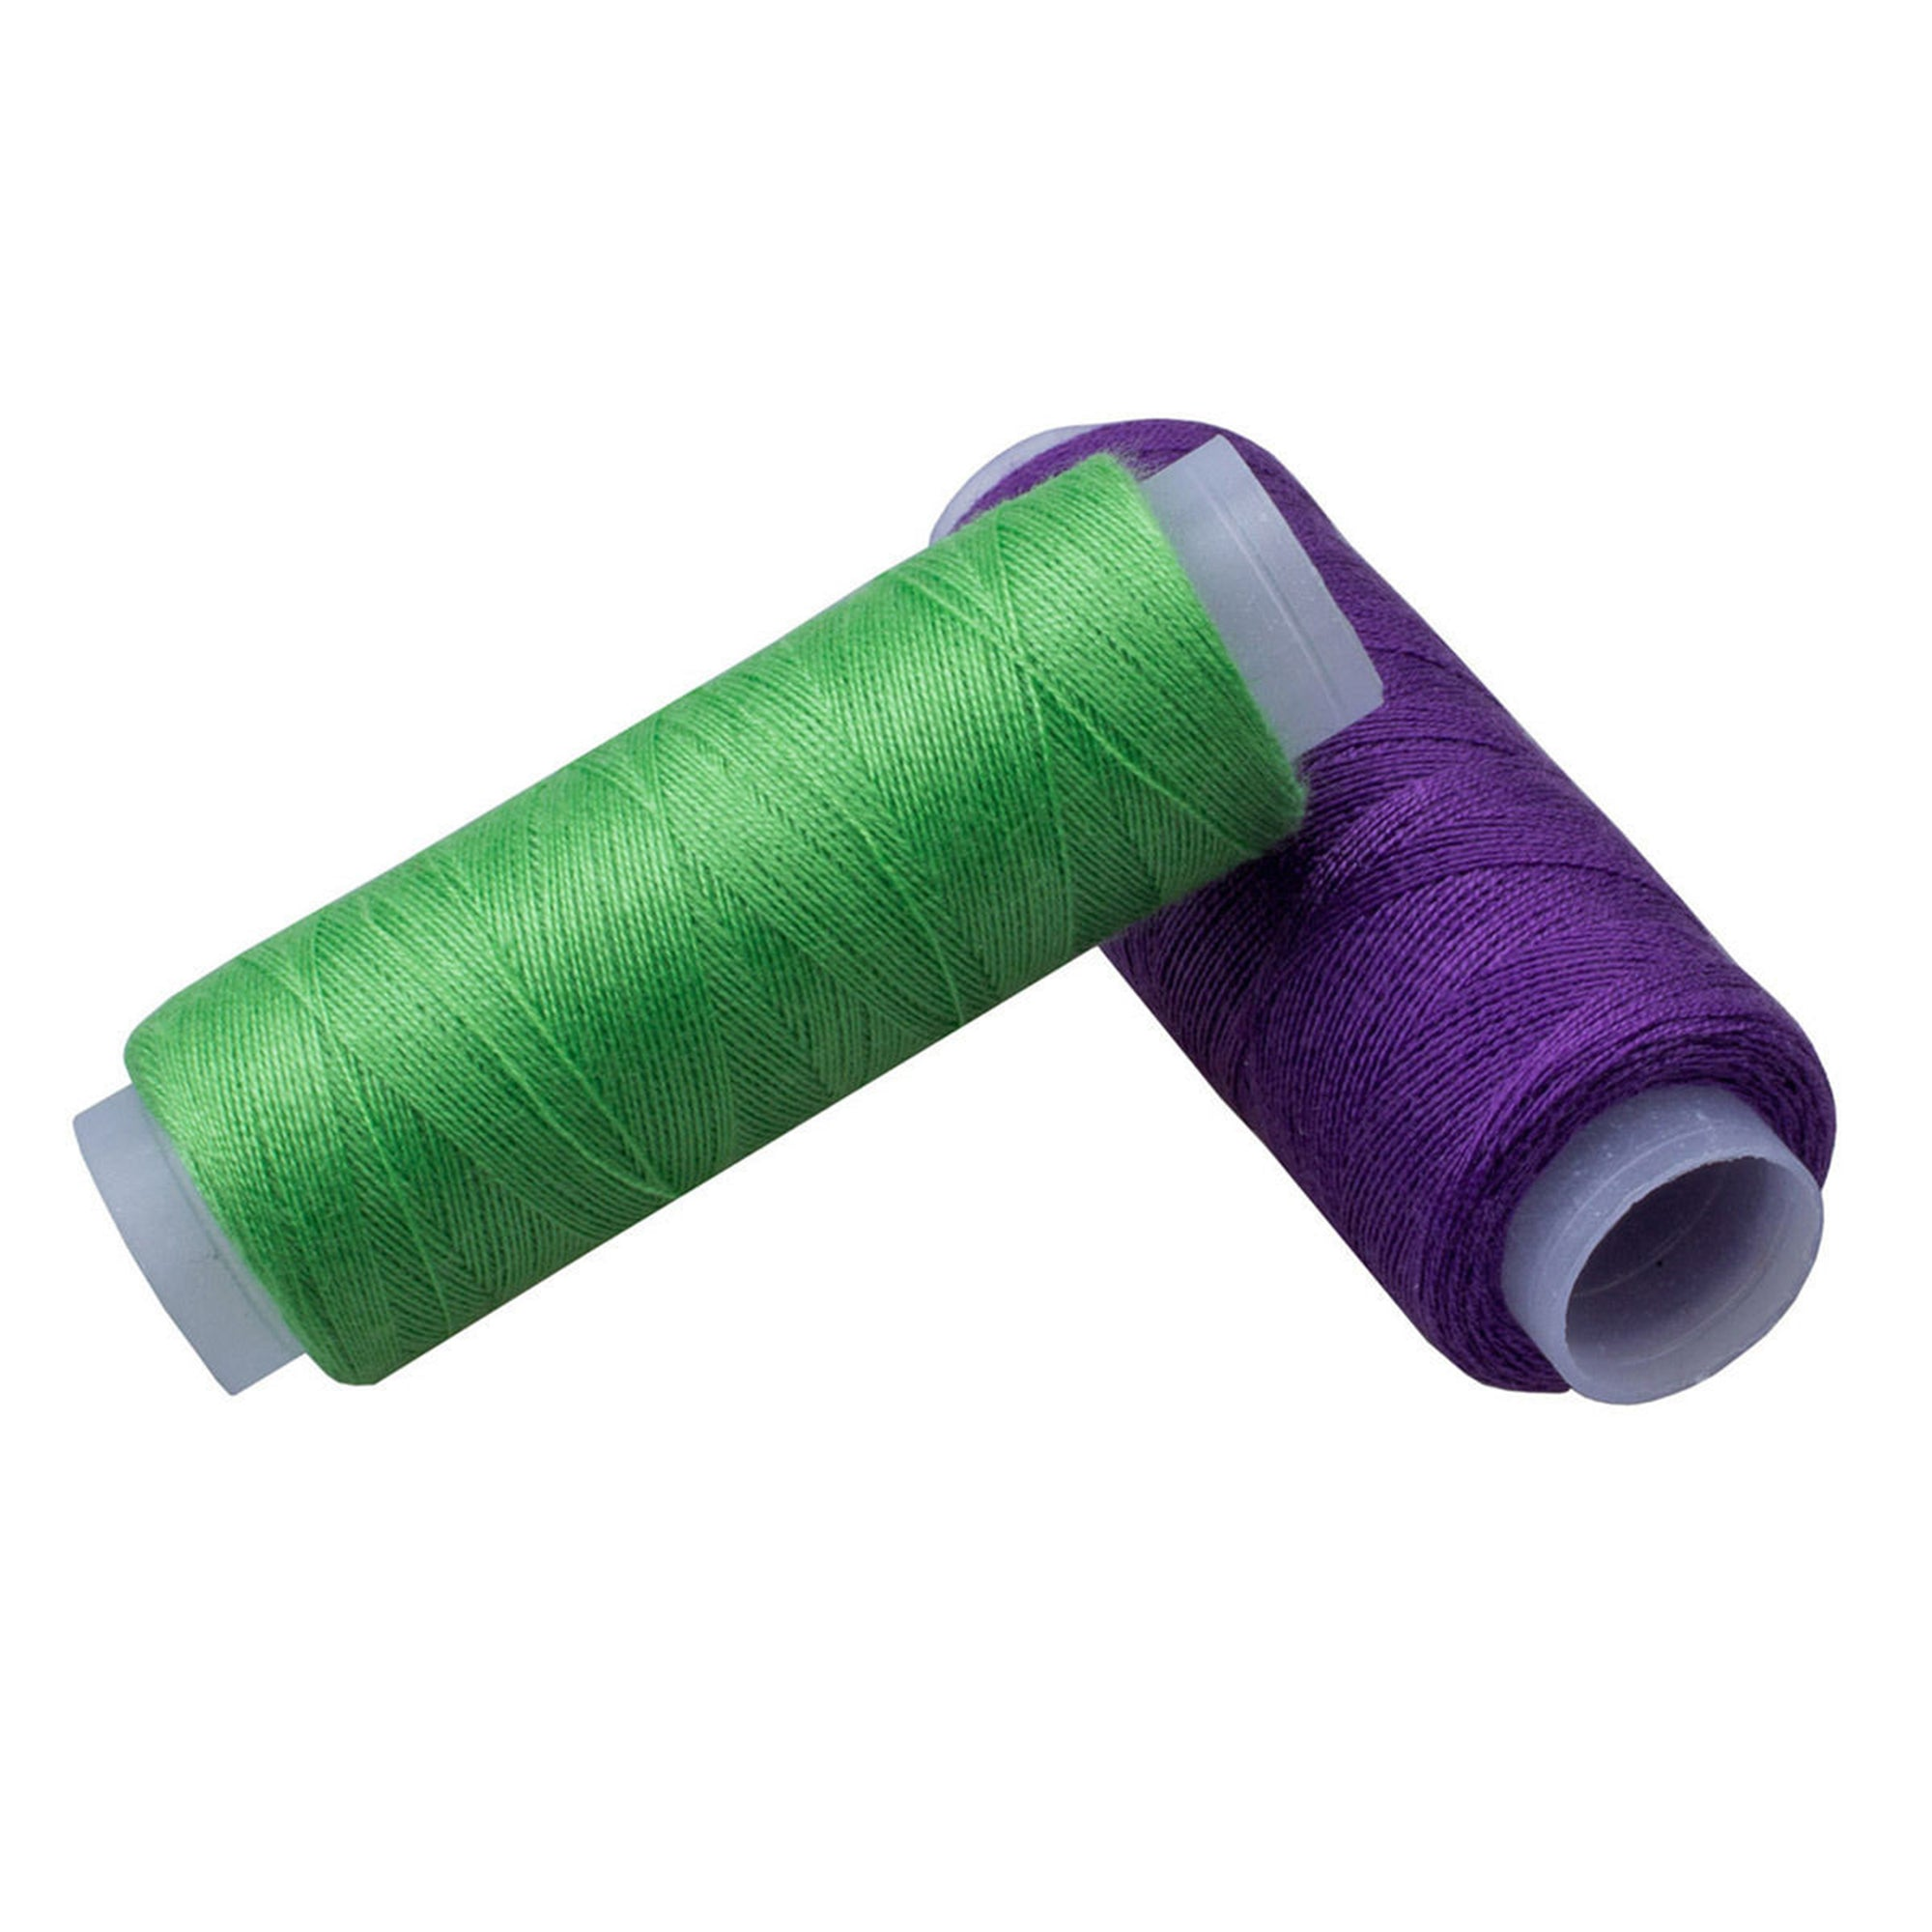 New High Quality Apple Green 200m Sewing Cotton Thread For Hand Or By Machine  .